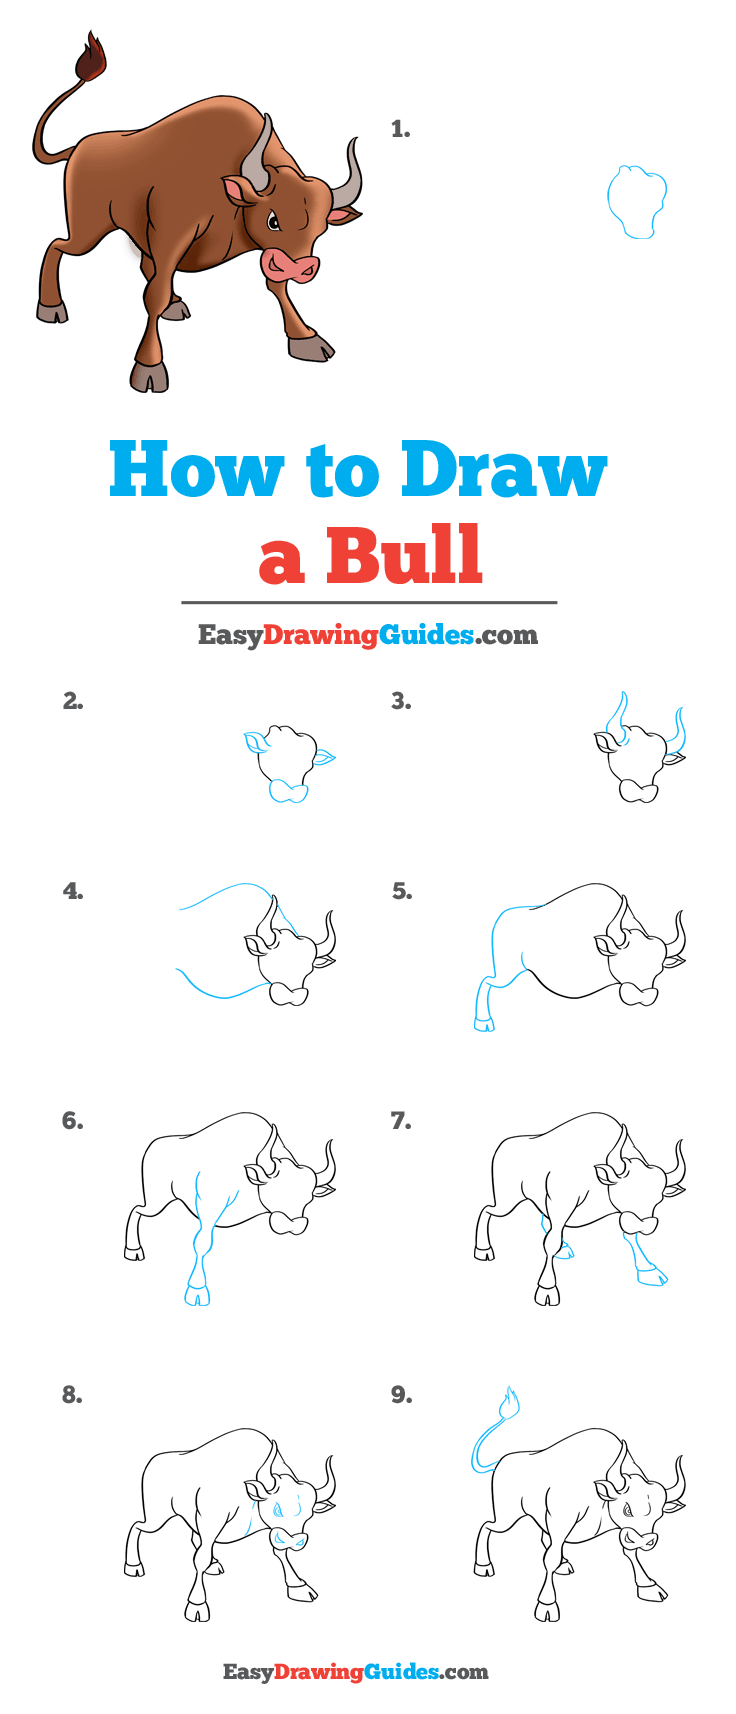 How to Draw a Bull Step by Step Tutorial Image